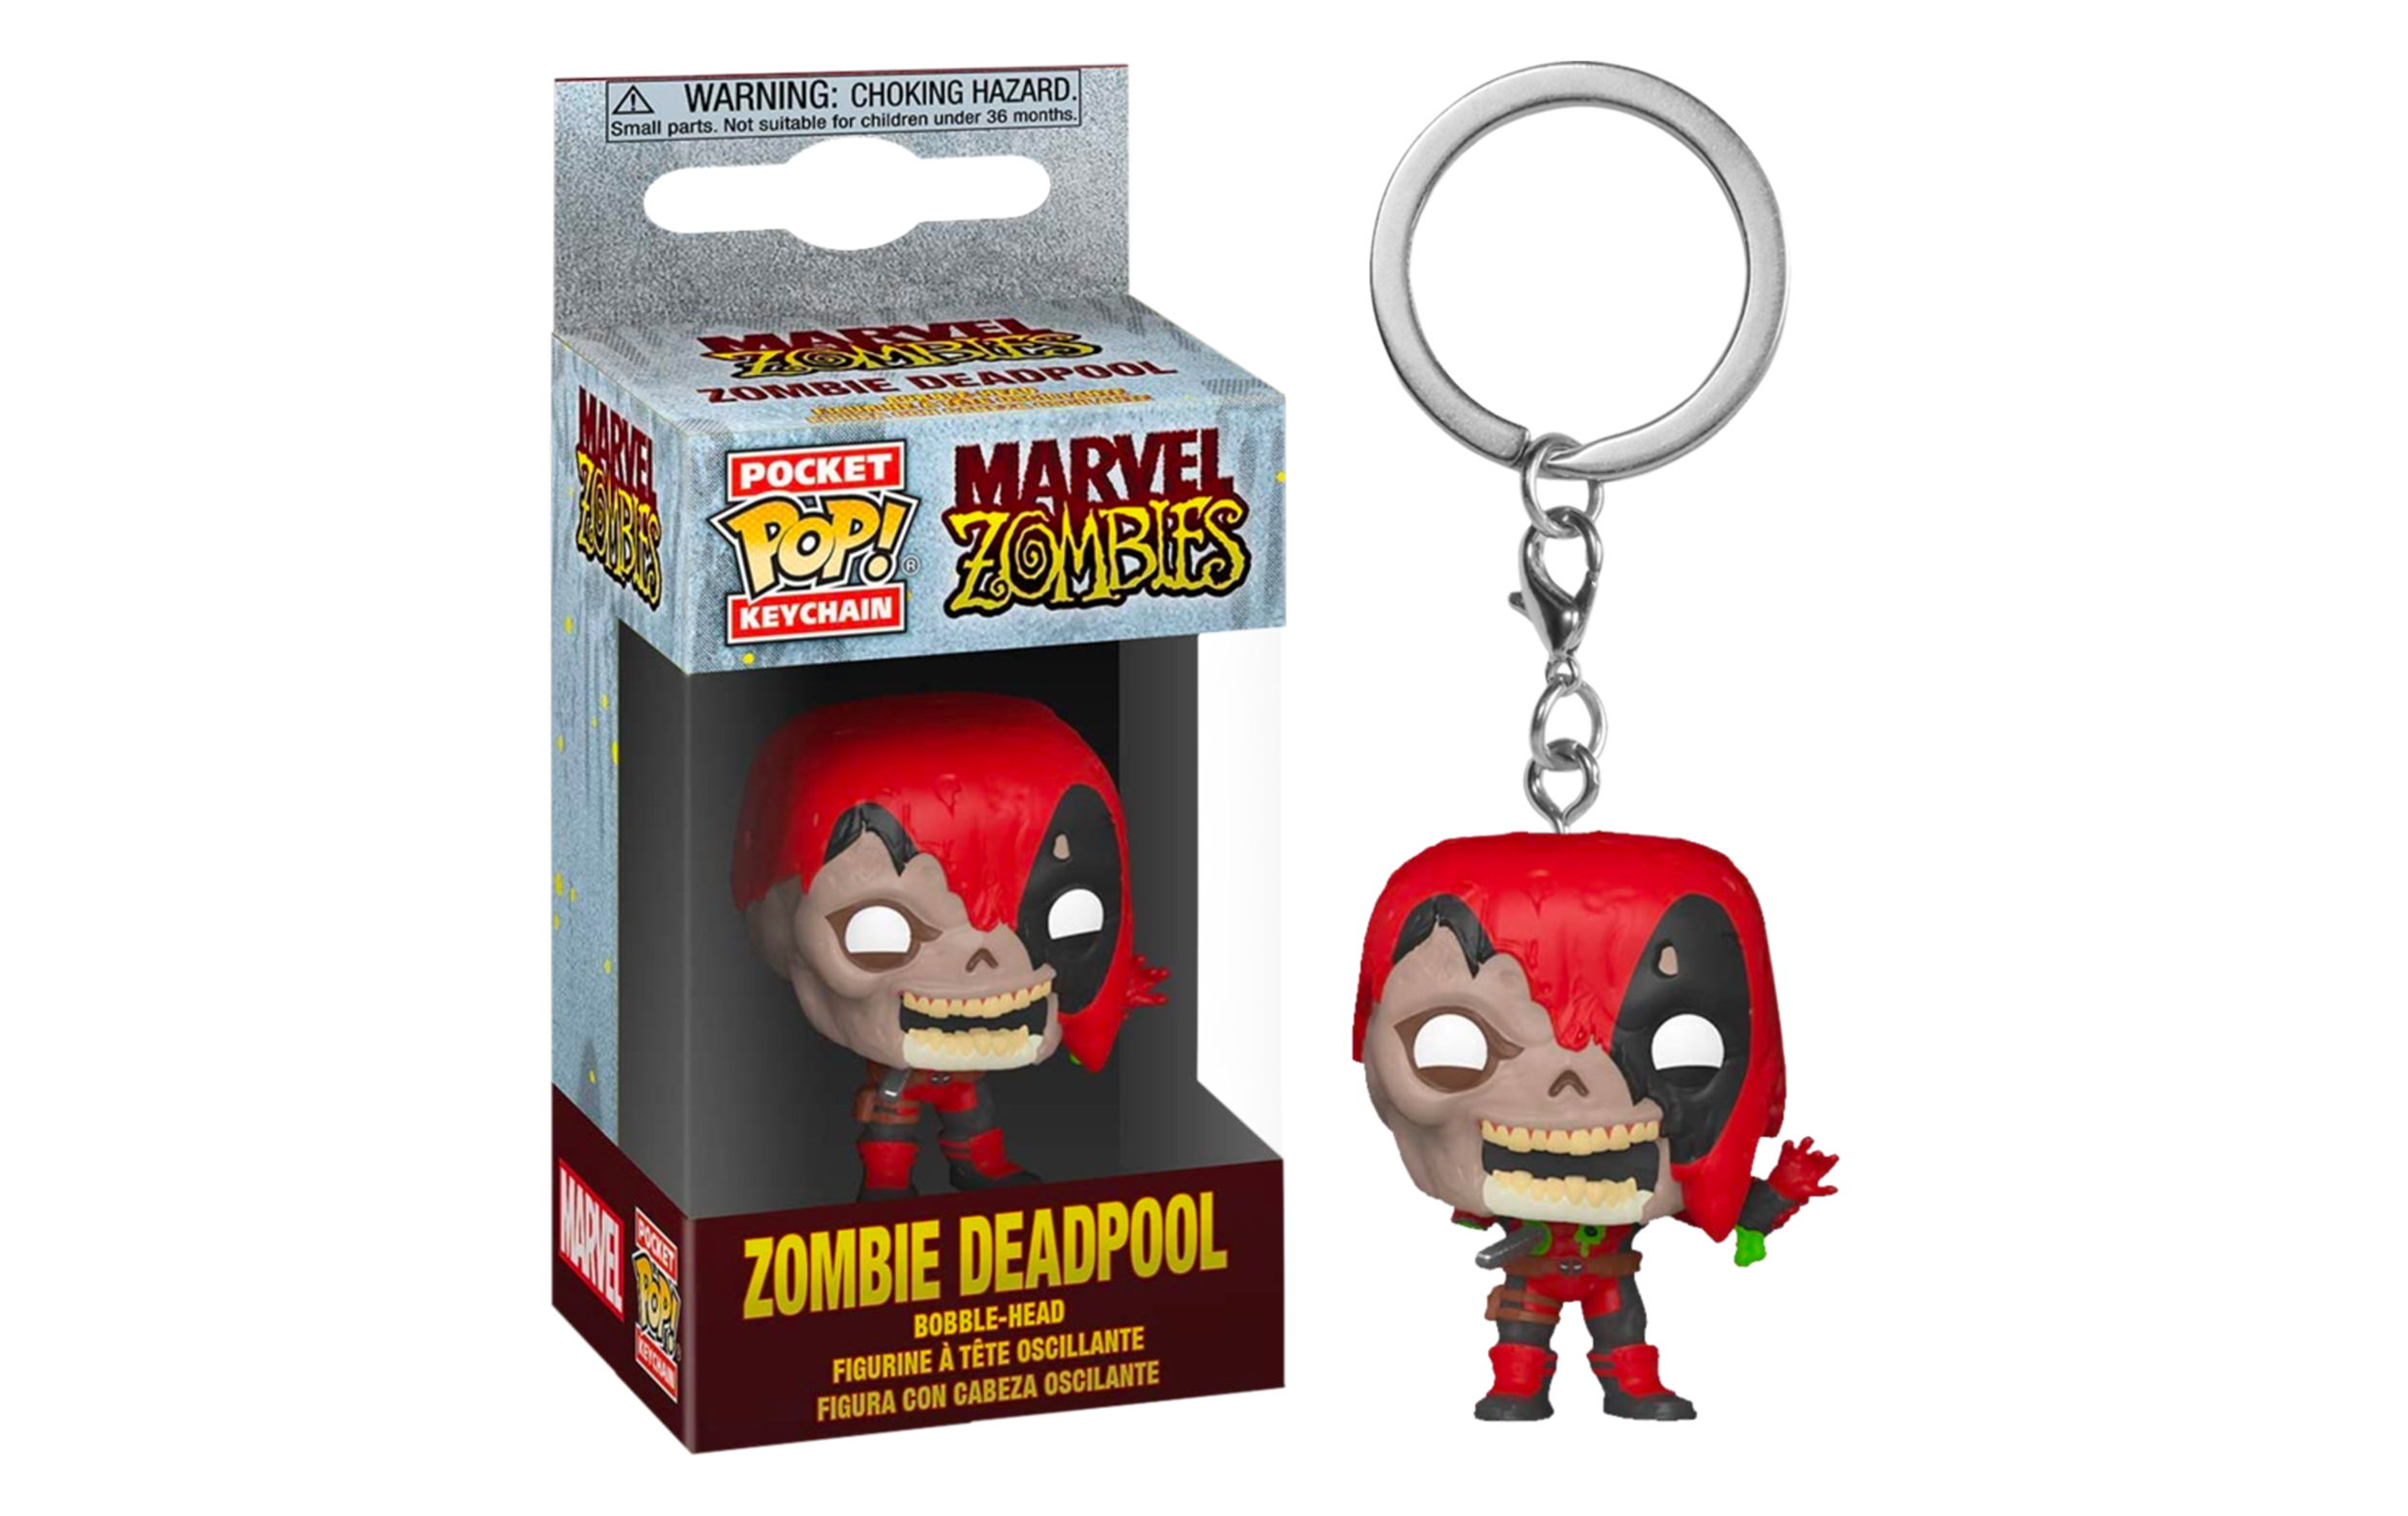 Marvel Zombies Zombie Deadpool Funko Pocket POP Keychains